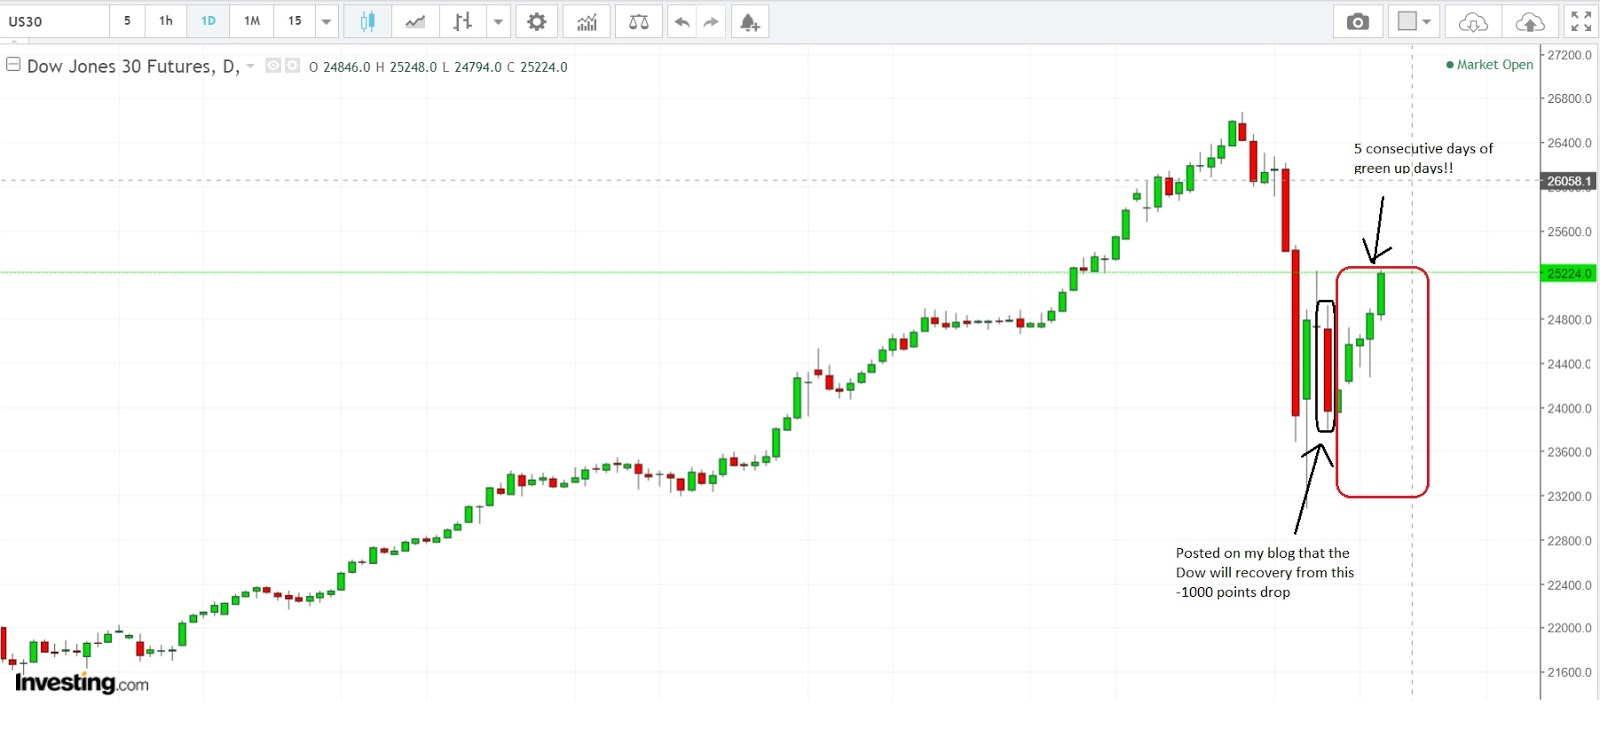 Stock Market Best-Kept Secrets: Dow Jones - 5 Consecutive Up Days of Recovery After -1000 Points ...